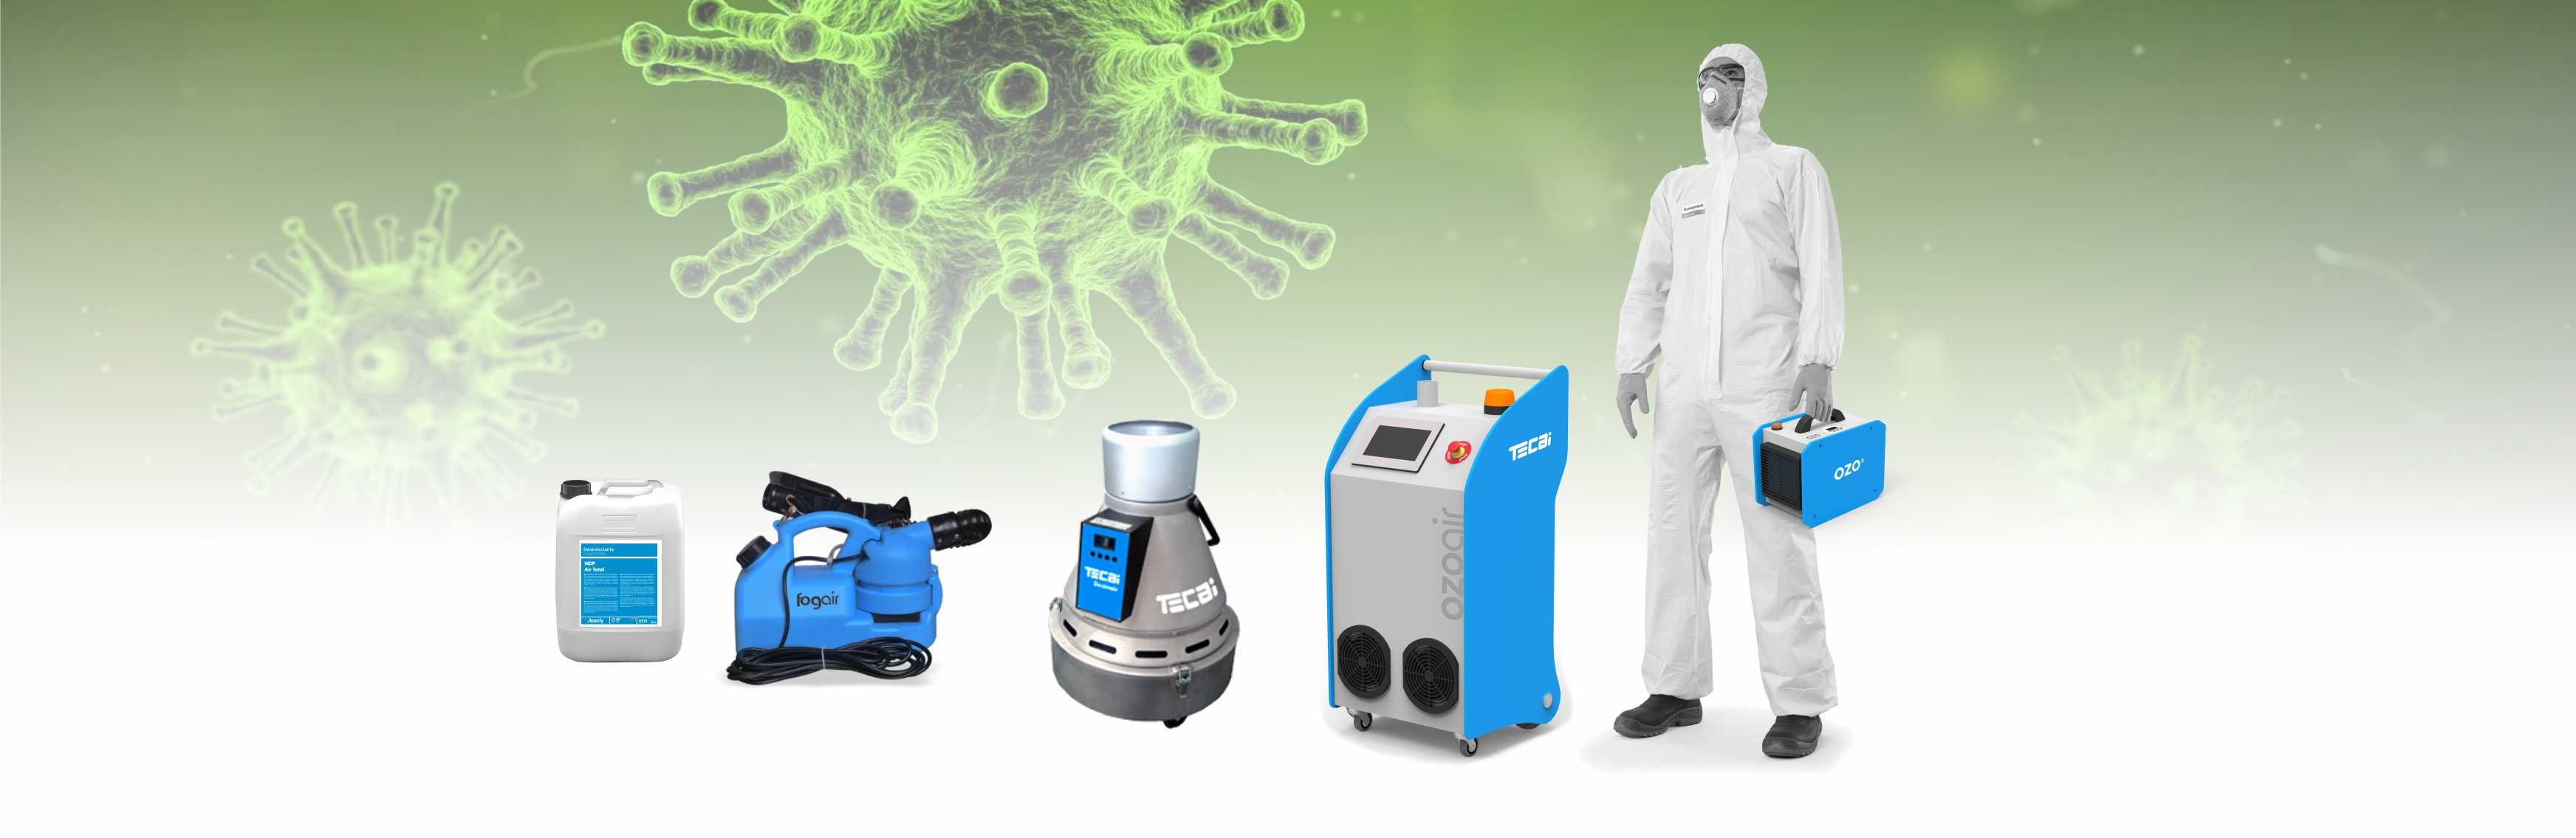 virus disinfection equipment